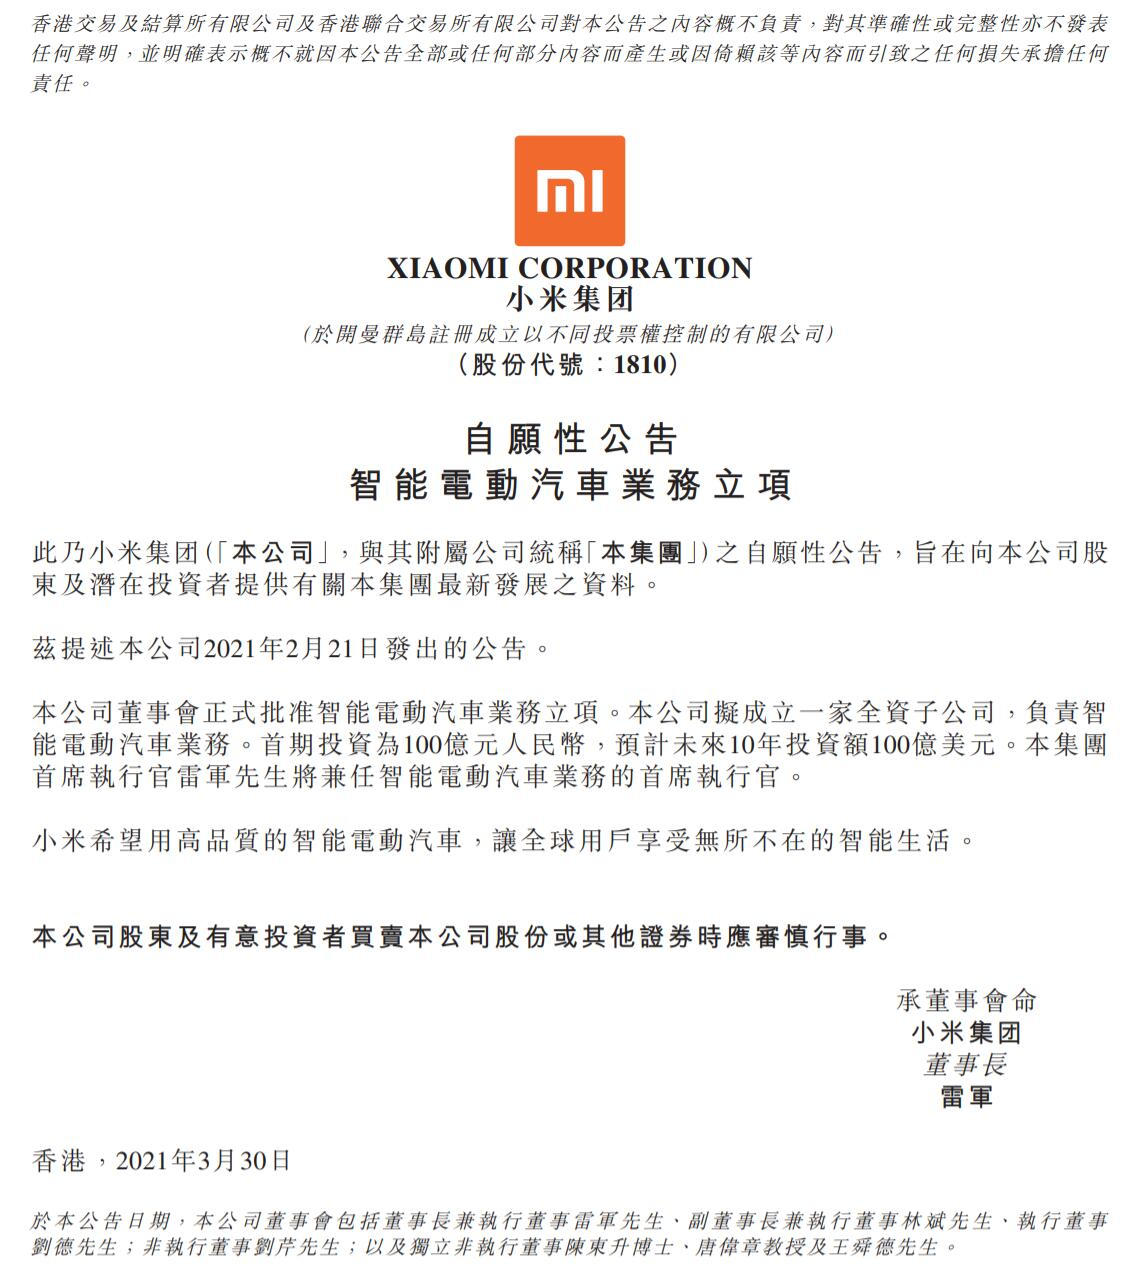 BREAKING: Xiaomi confirms launch of electric car business, to invest $10 billion over next decade-CnEVPost